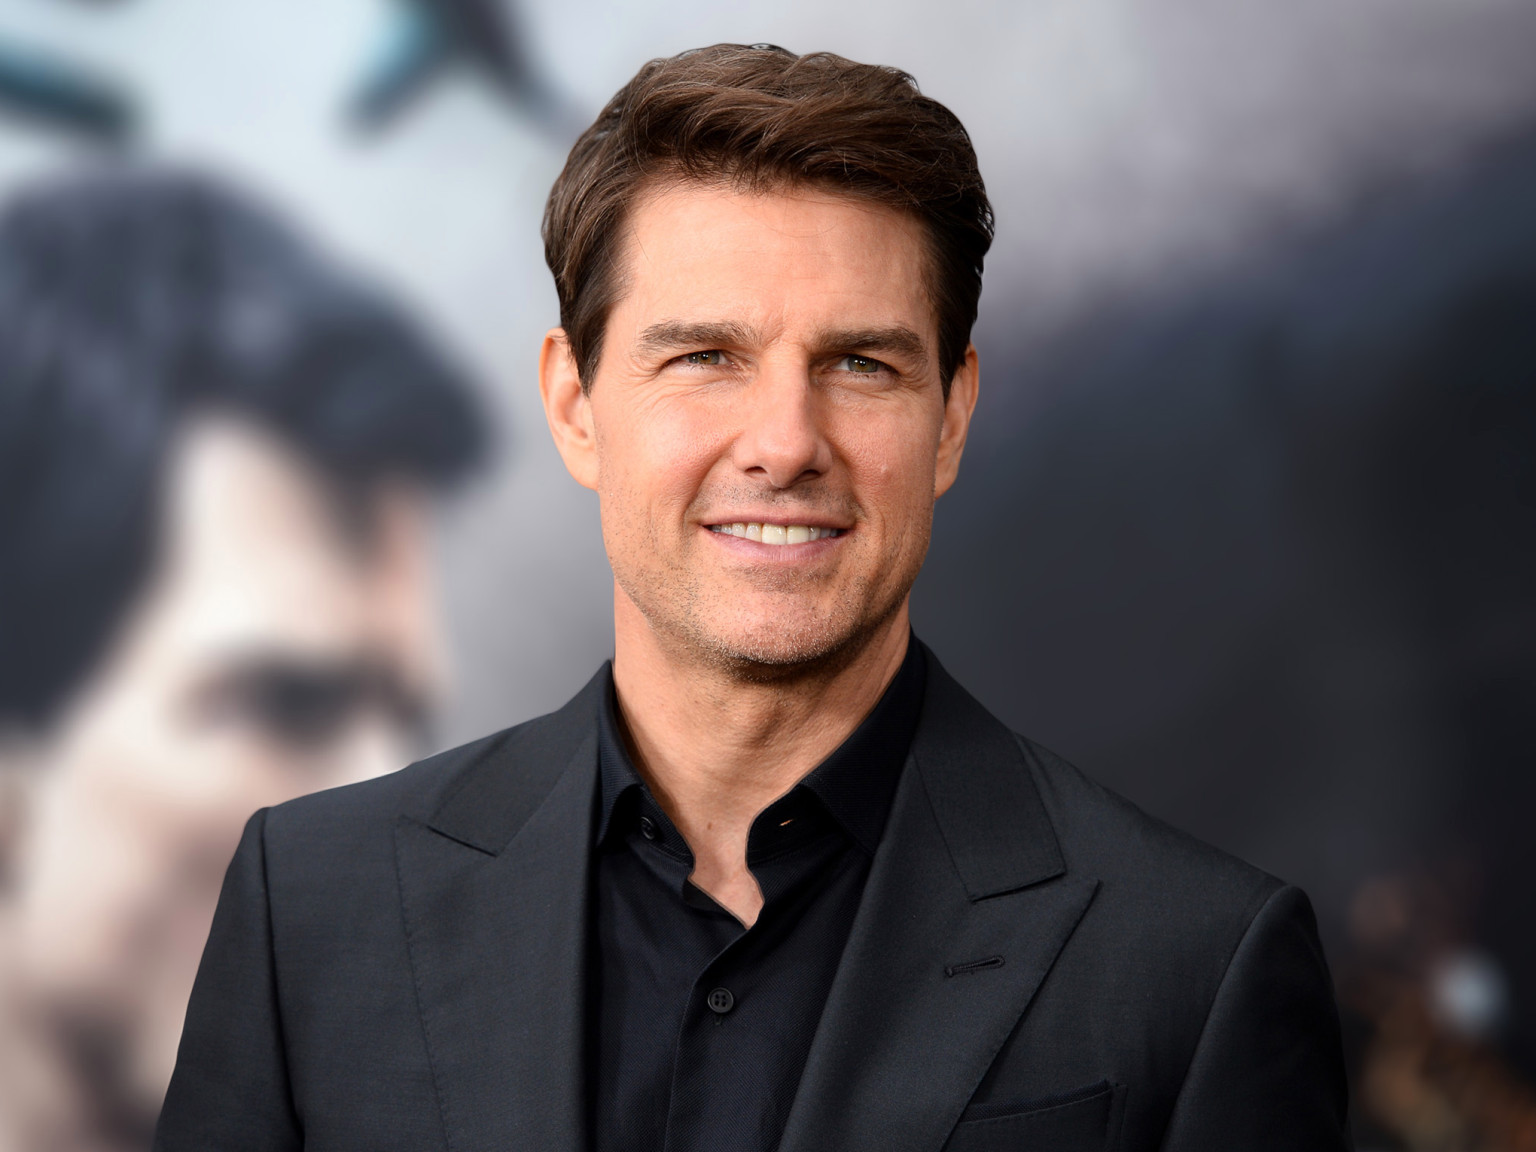 new york ny   june 06 tom cruise attends quot the mummy quot new york fan event at amc loews lincoln square on june 6 2017 in new york city photo by andrew toth filmmagic